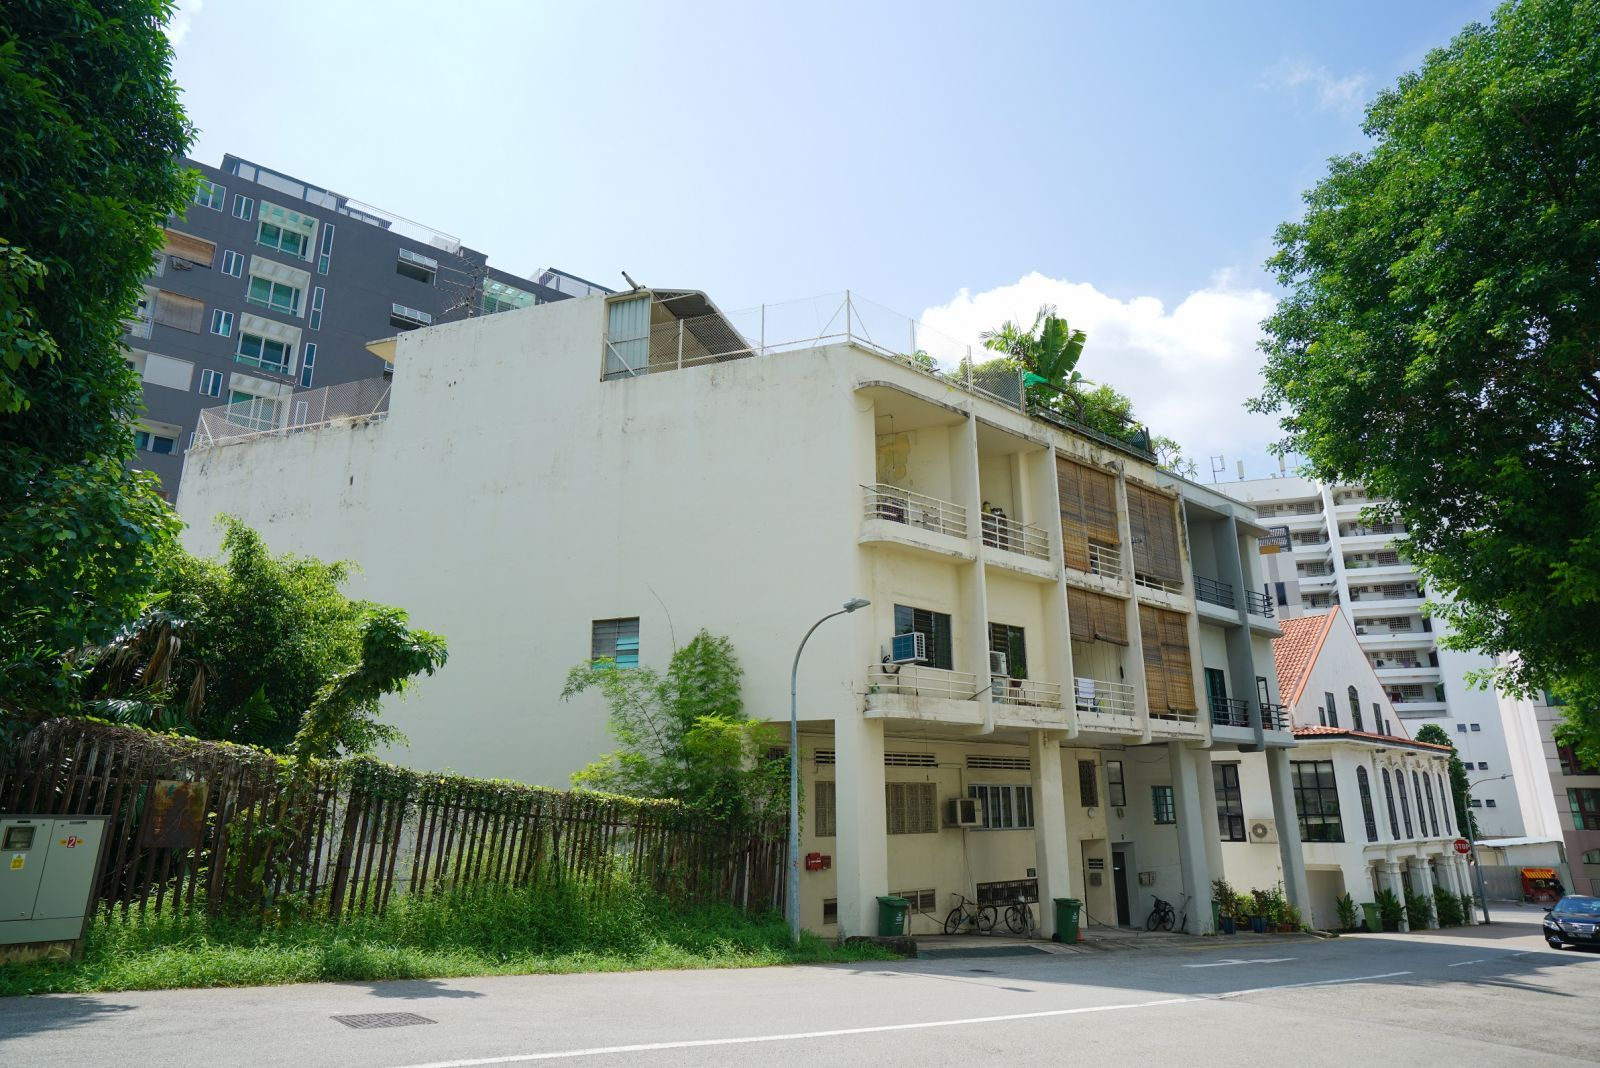 Mount Emily Residential Block Up For Collective Sale With S 24m Guide Price Real Estate The Business Times